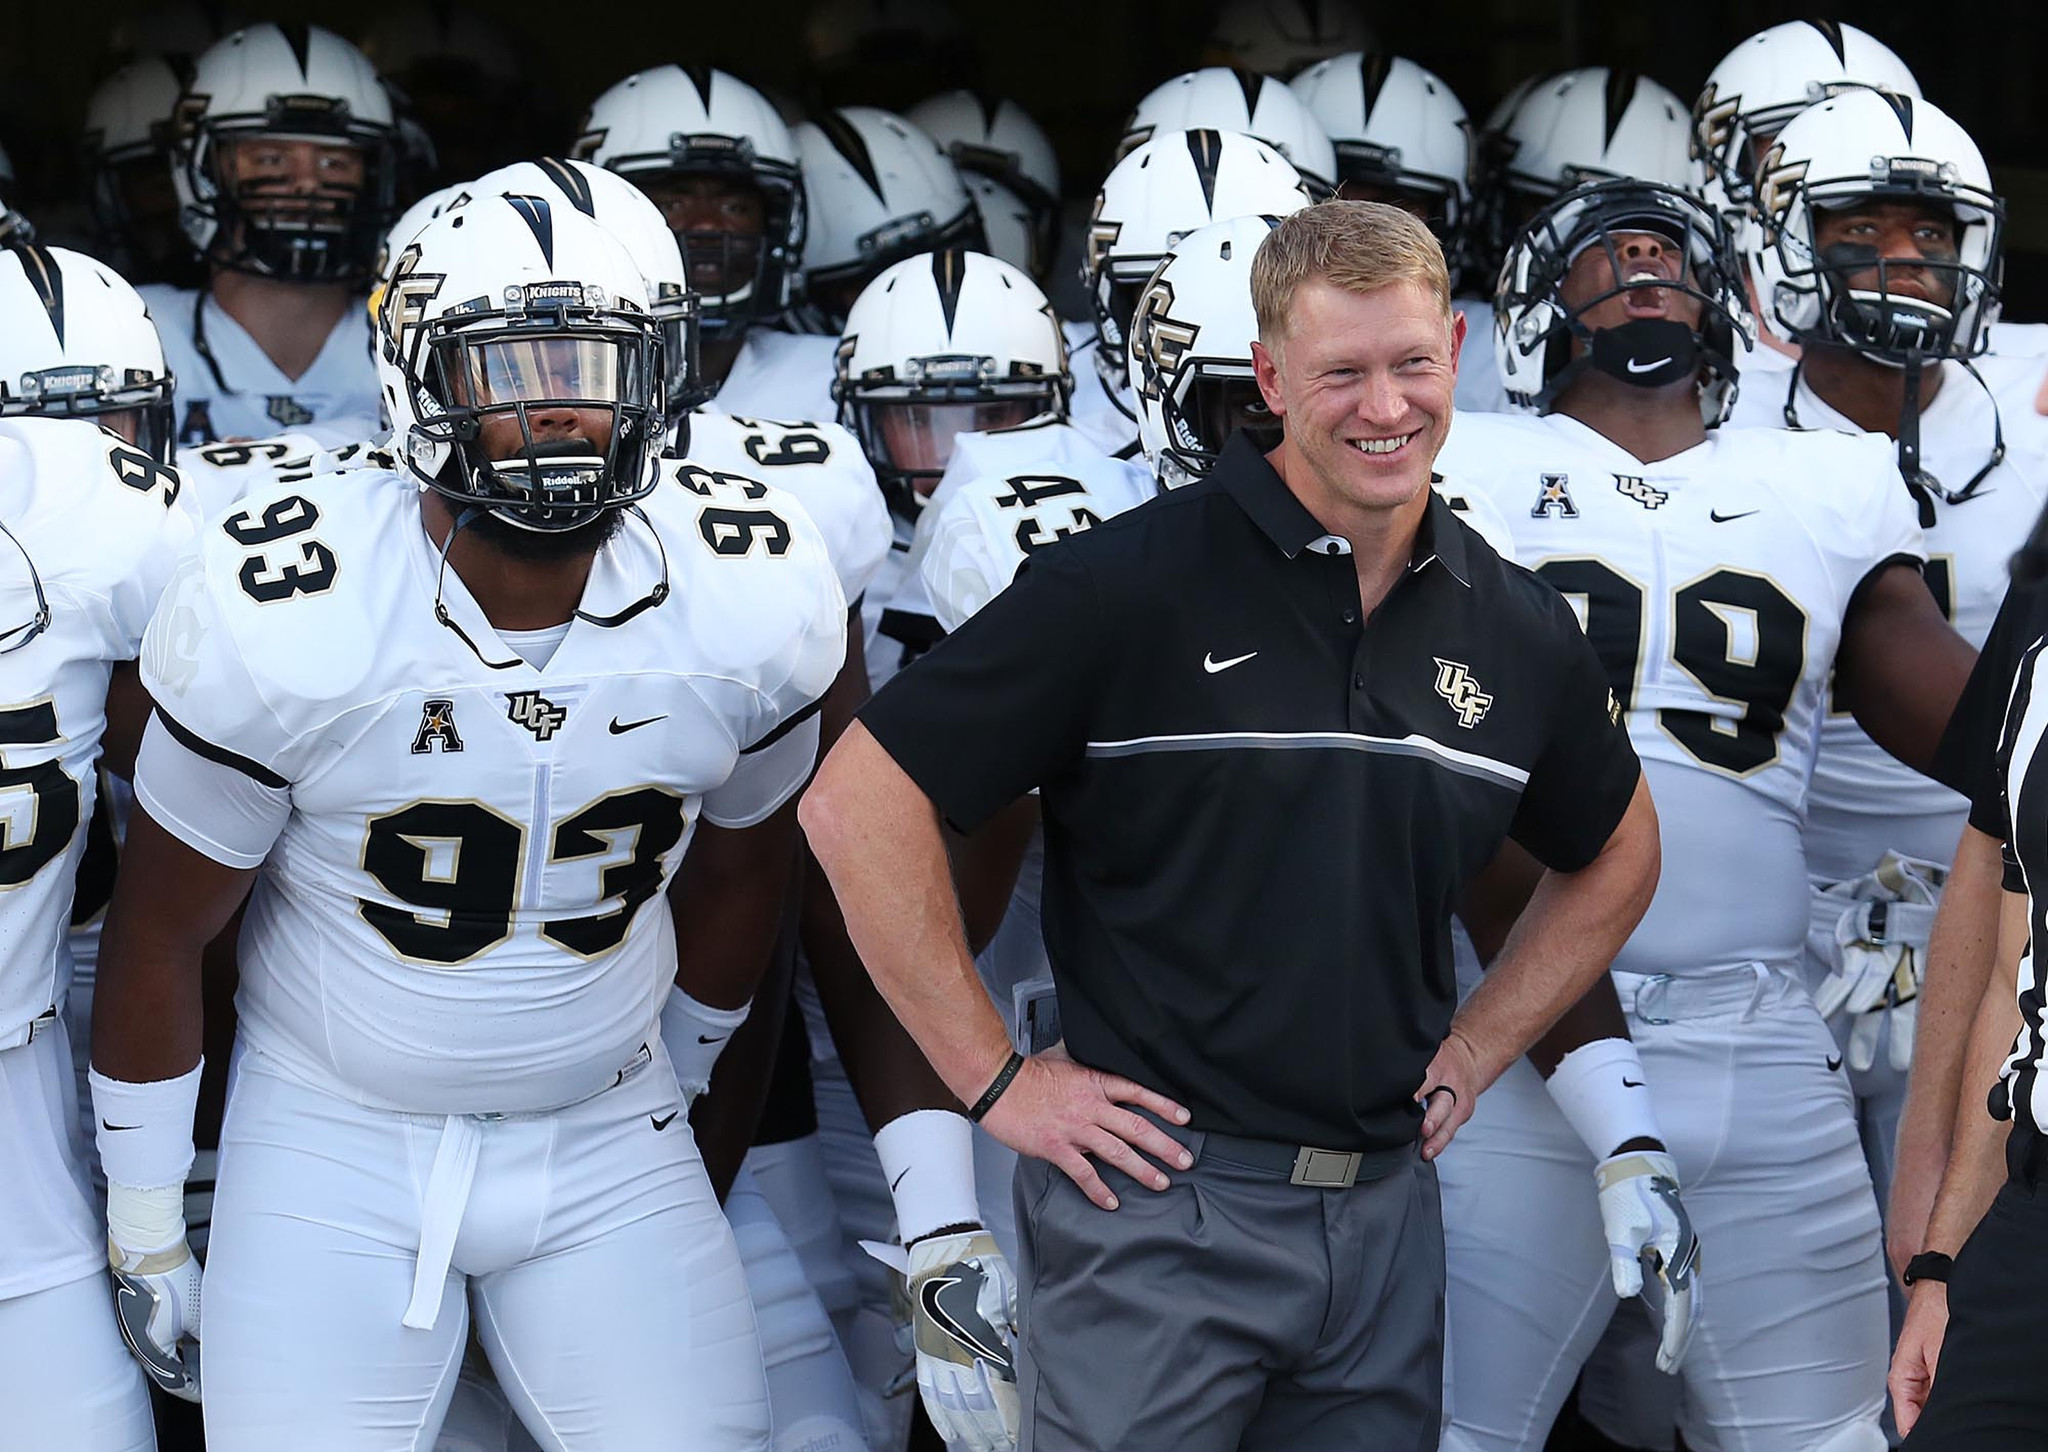 Scott Frost Navy >> Bianchi: Sorry, Nebraska, Frost wants to 'keep the band together' at UCF - Orlando Sentinel